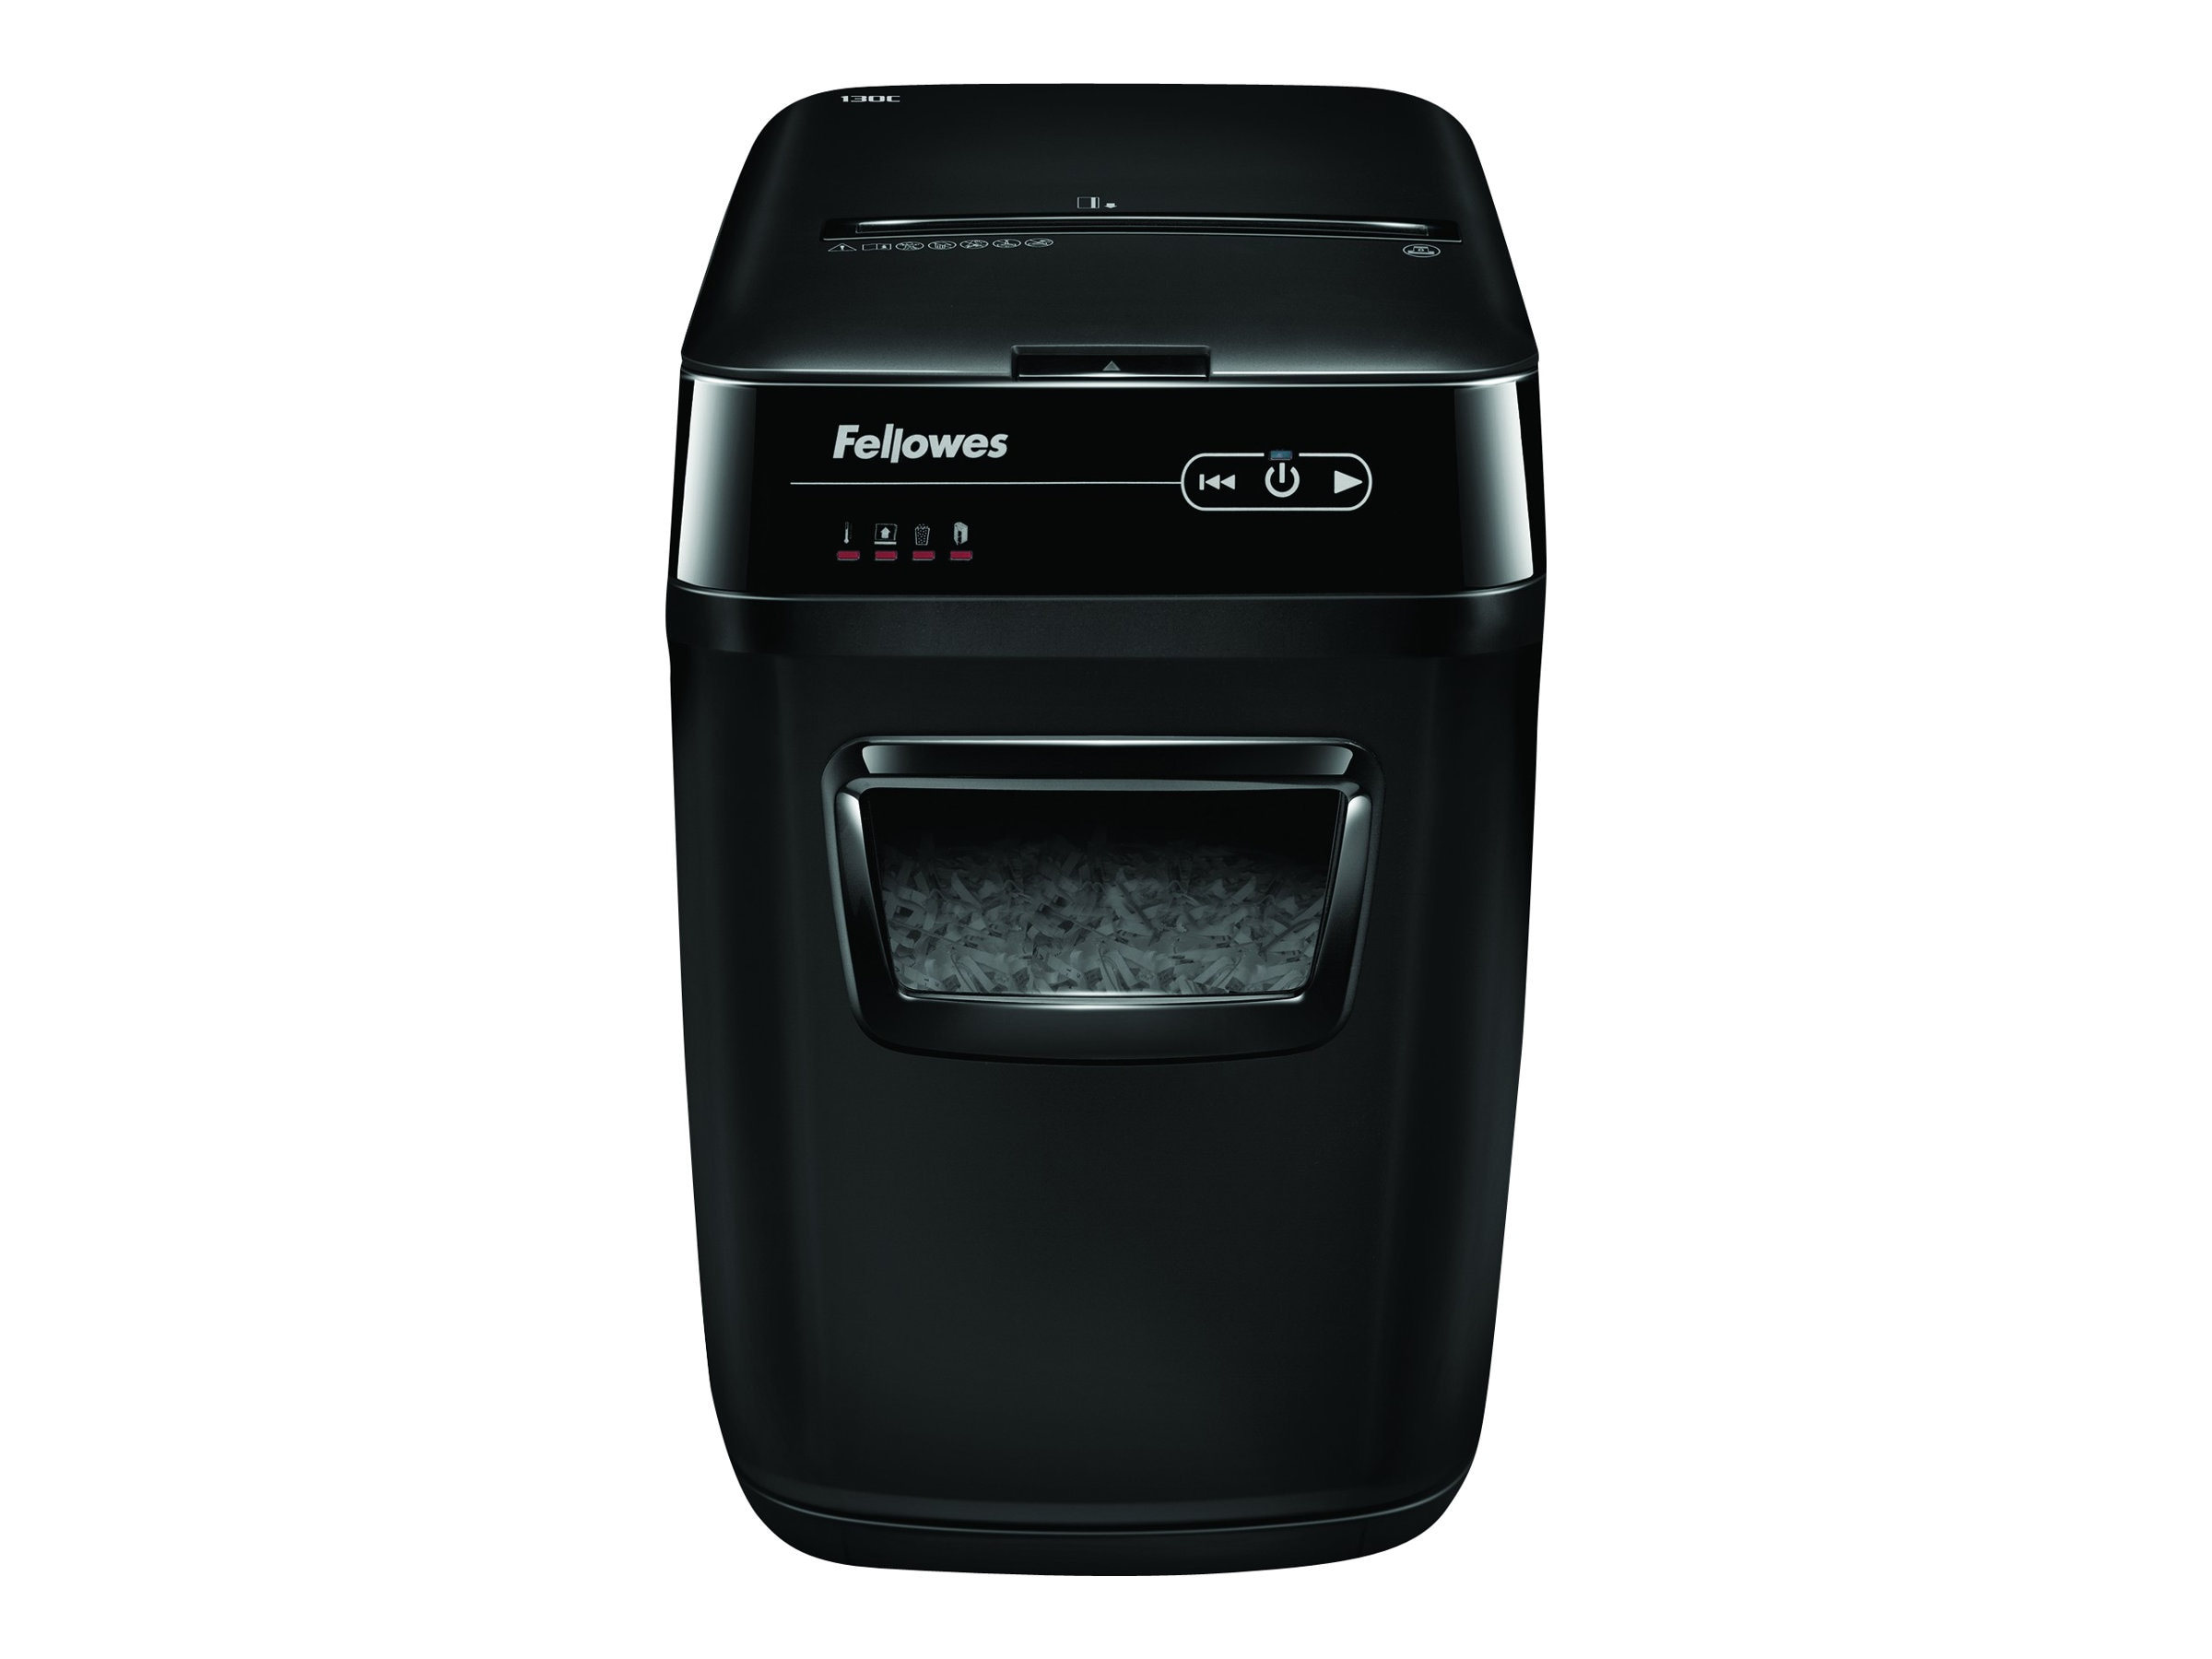 Fellowes 4680001 Image 2